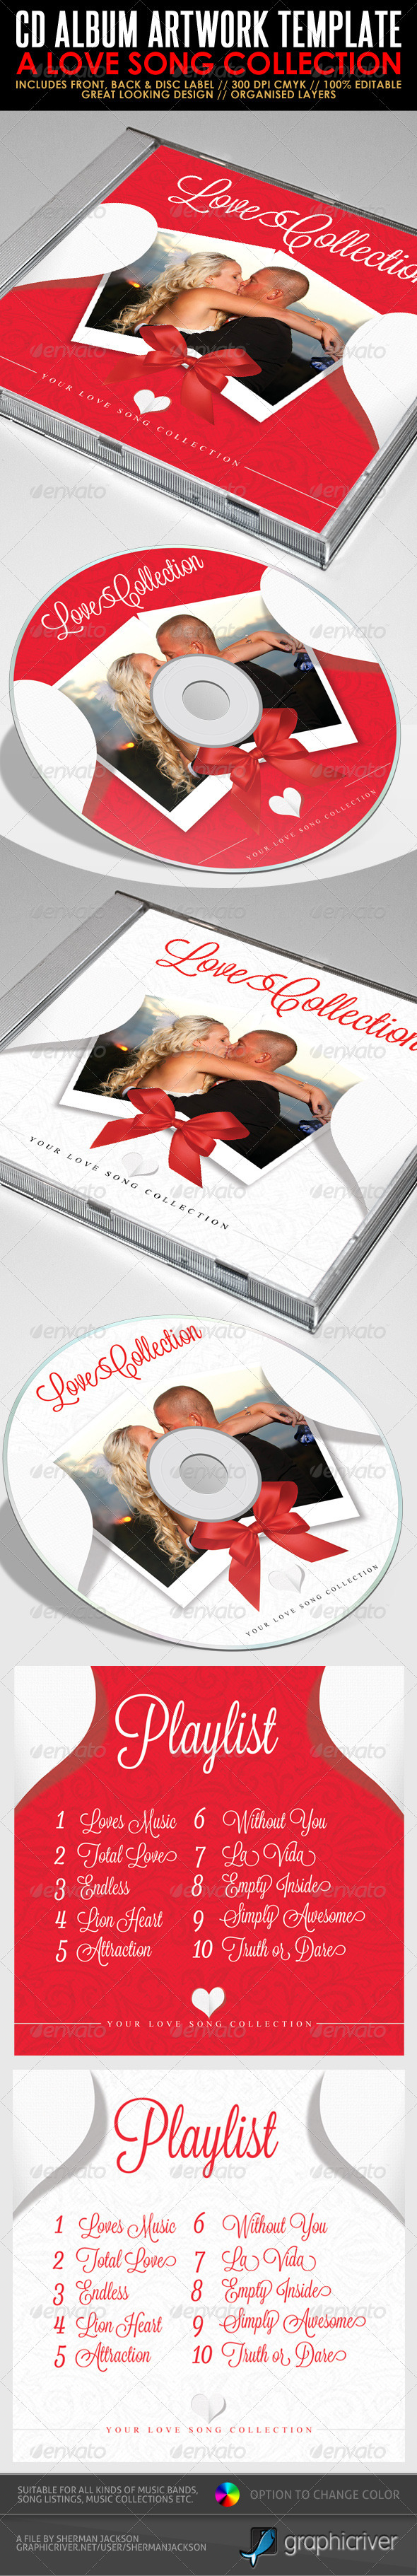 Love Song Collection - CD Artwork PSD Template - CD & DVD Artwork Print Templates